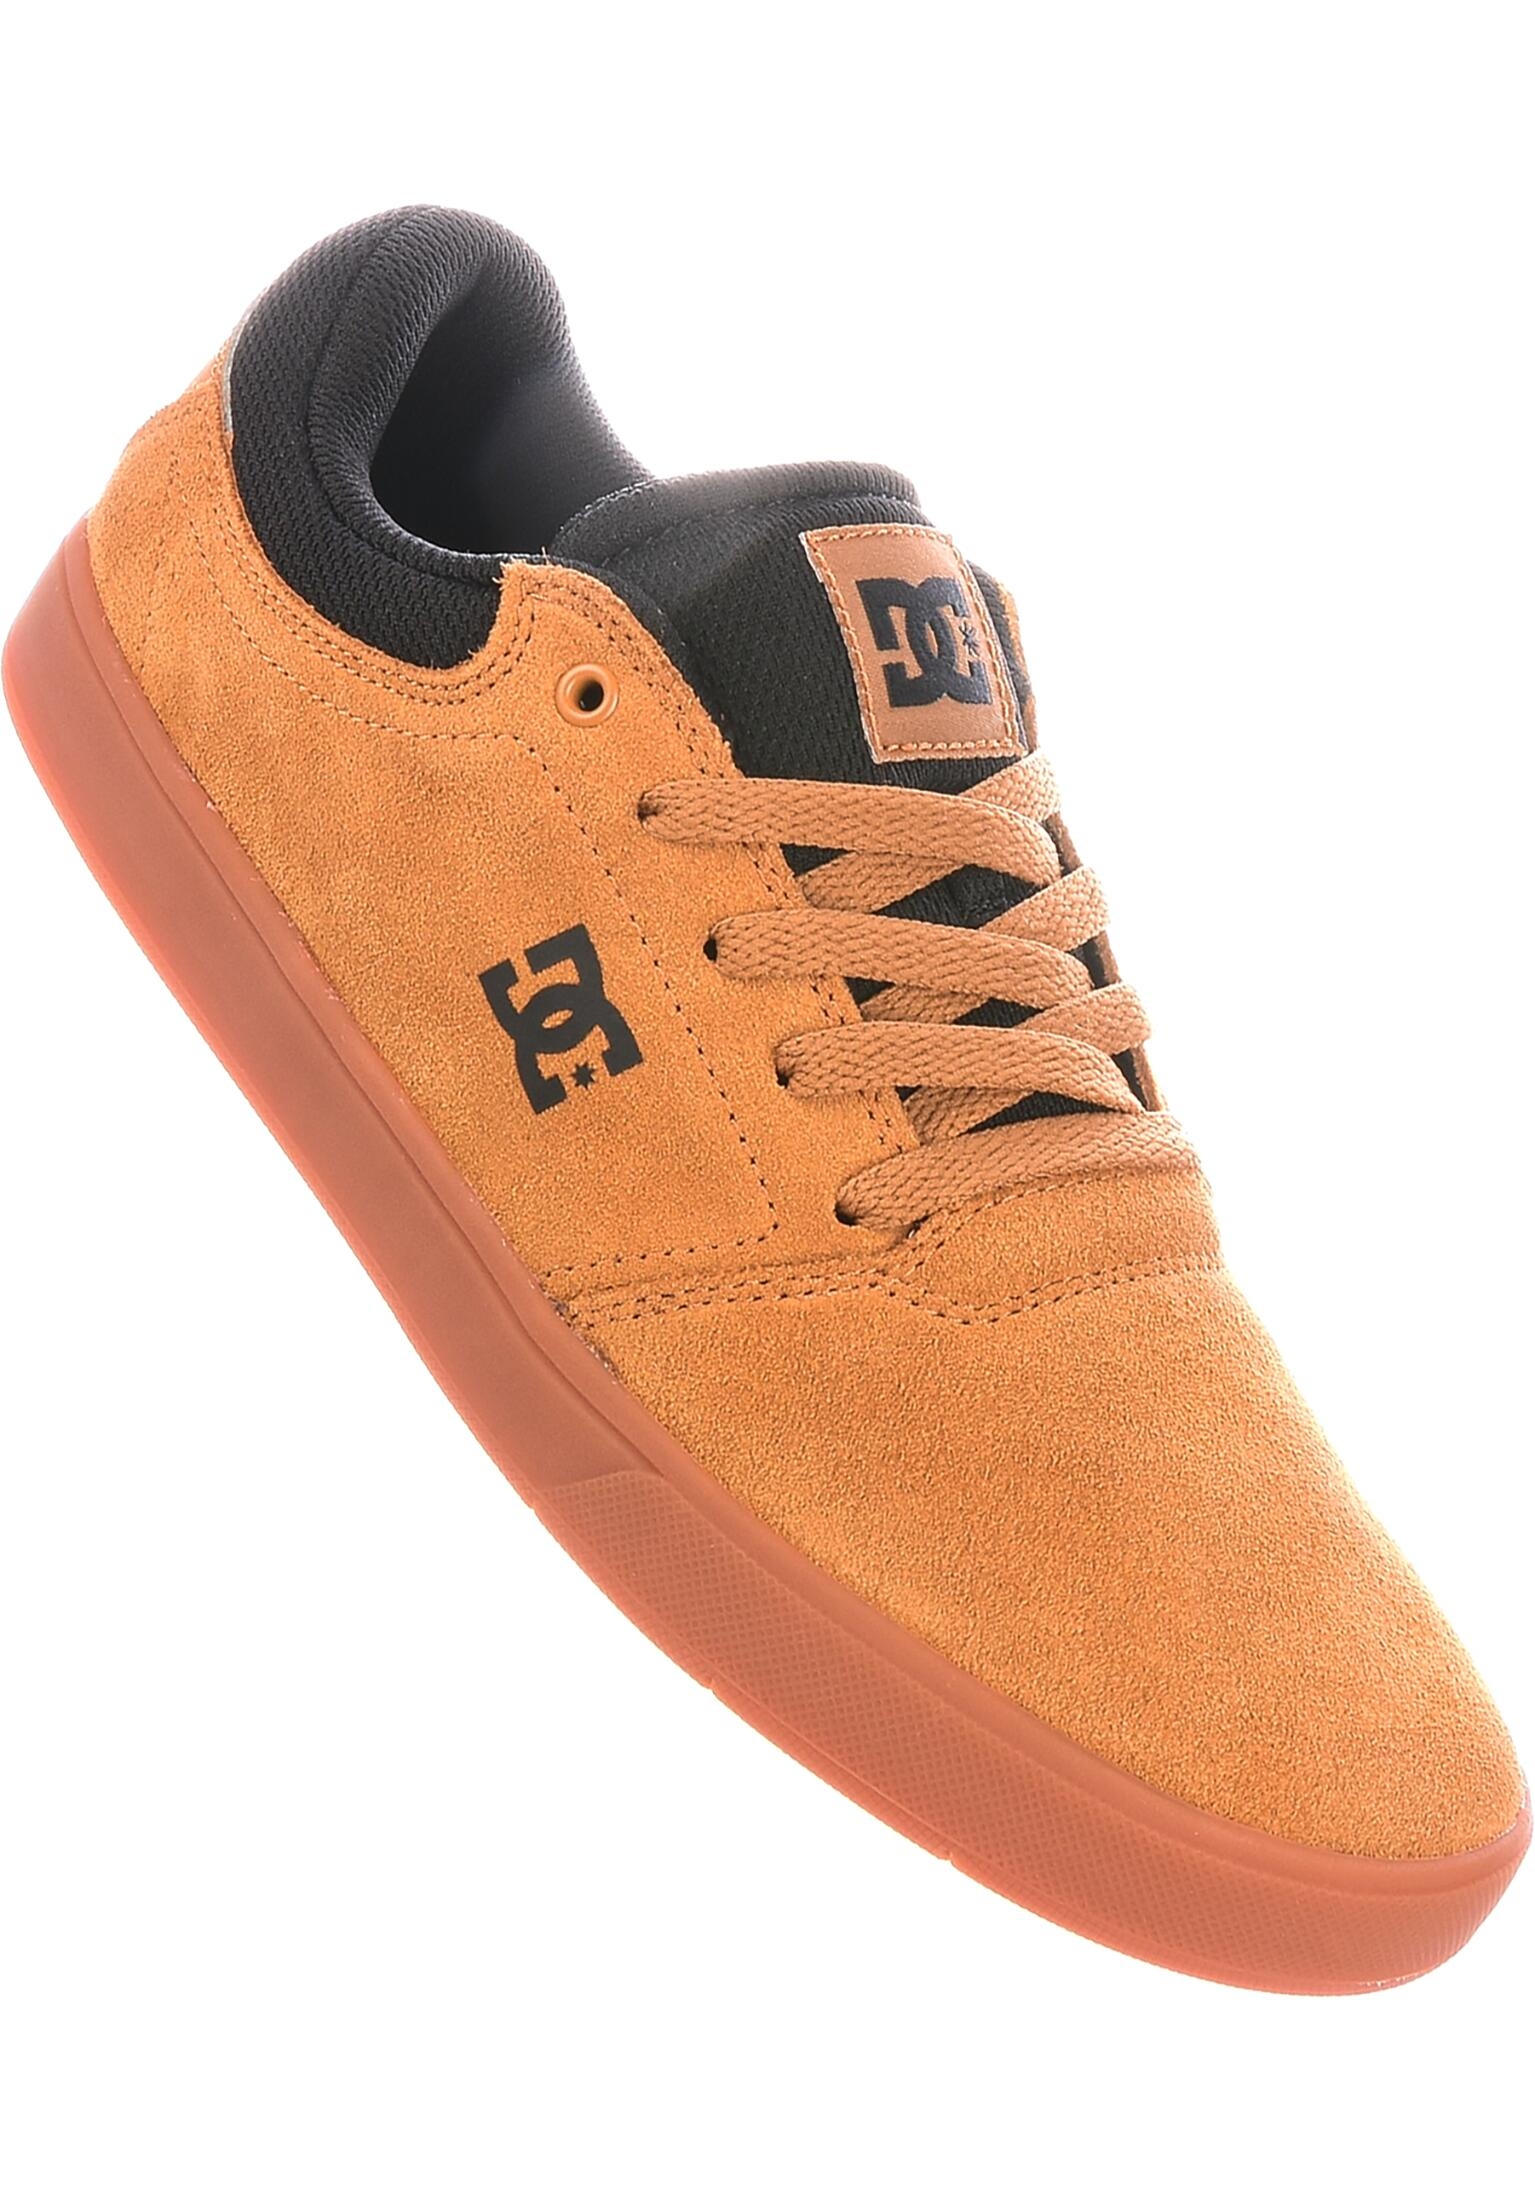 Crisis DC Shoes All Shoes in wheat